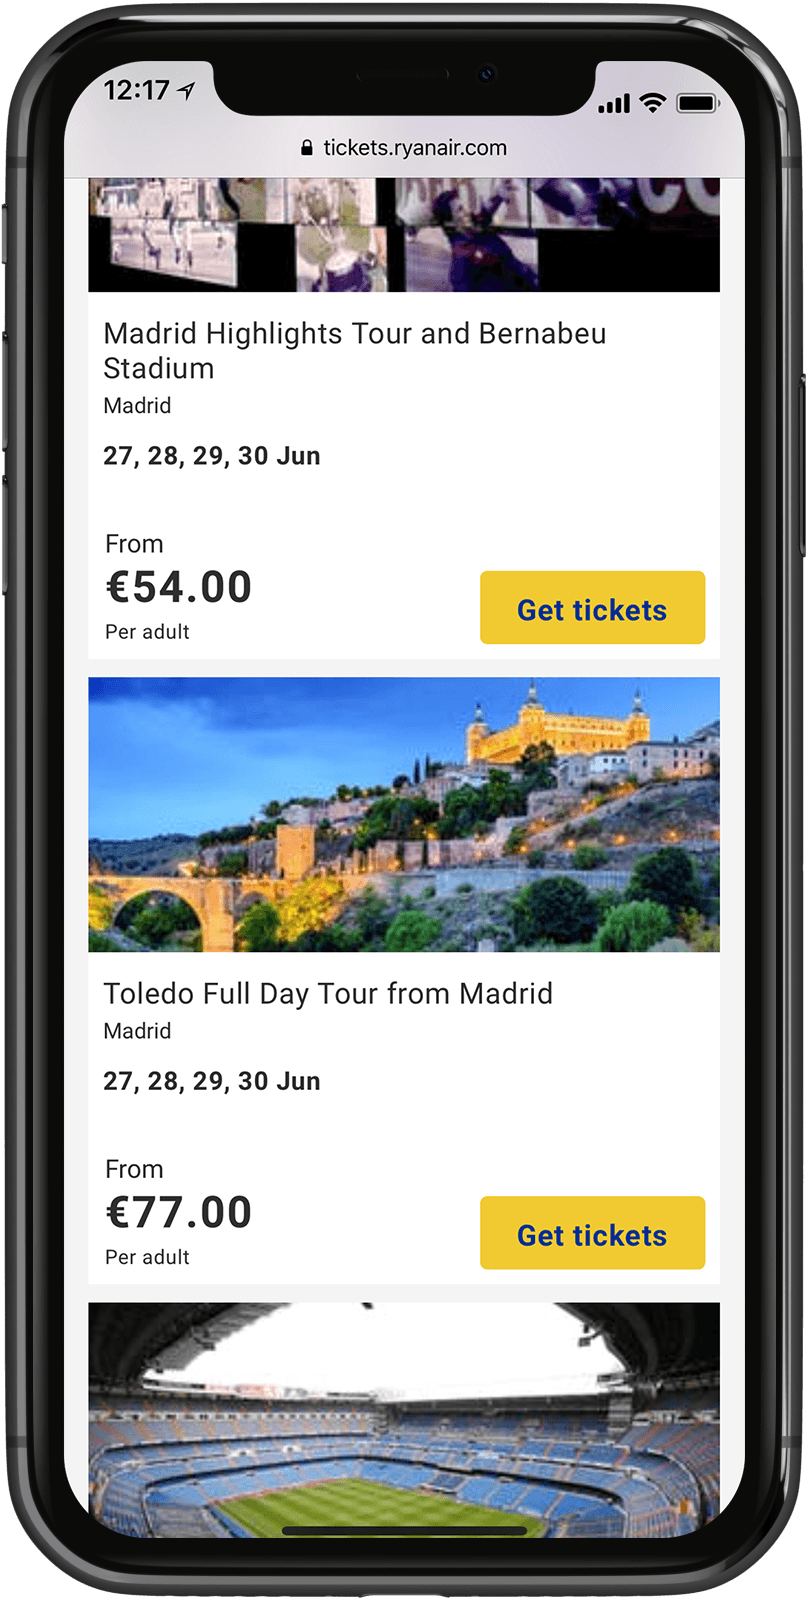 Ryanair Tickets's list of Madrid ticket offerings such as a tour around the Bernabeu Stadium or a Taledo day tour.